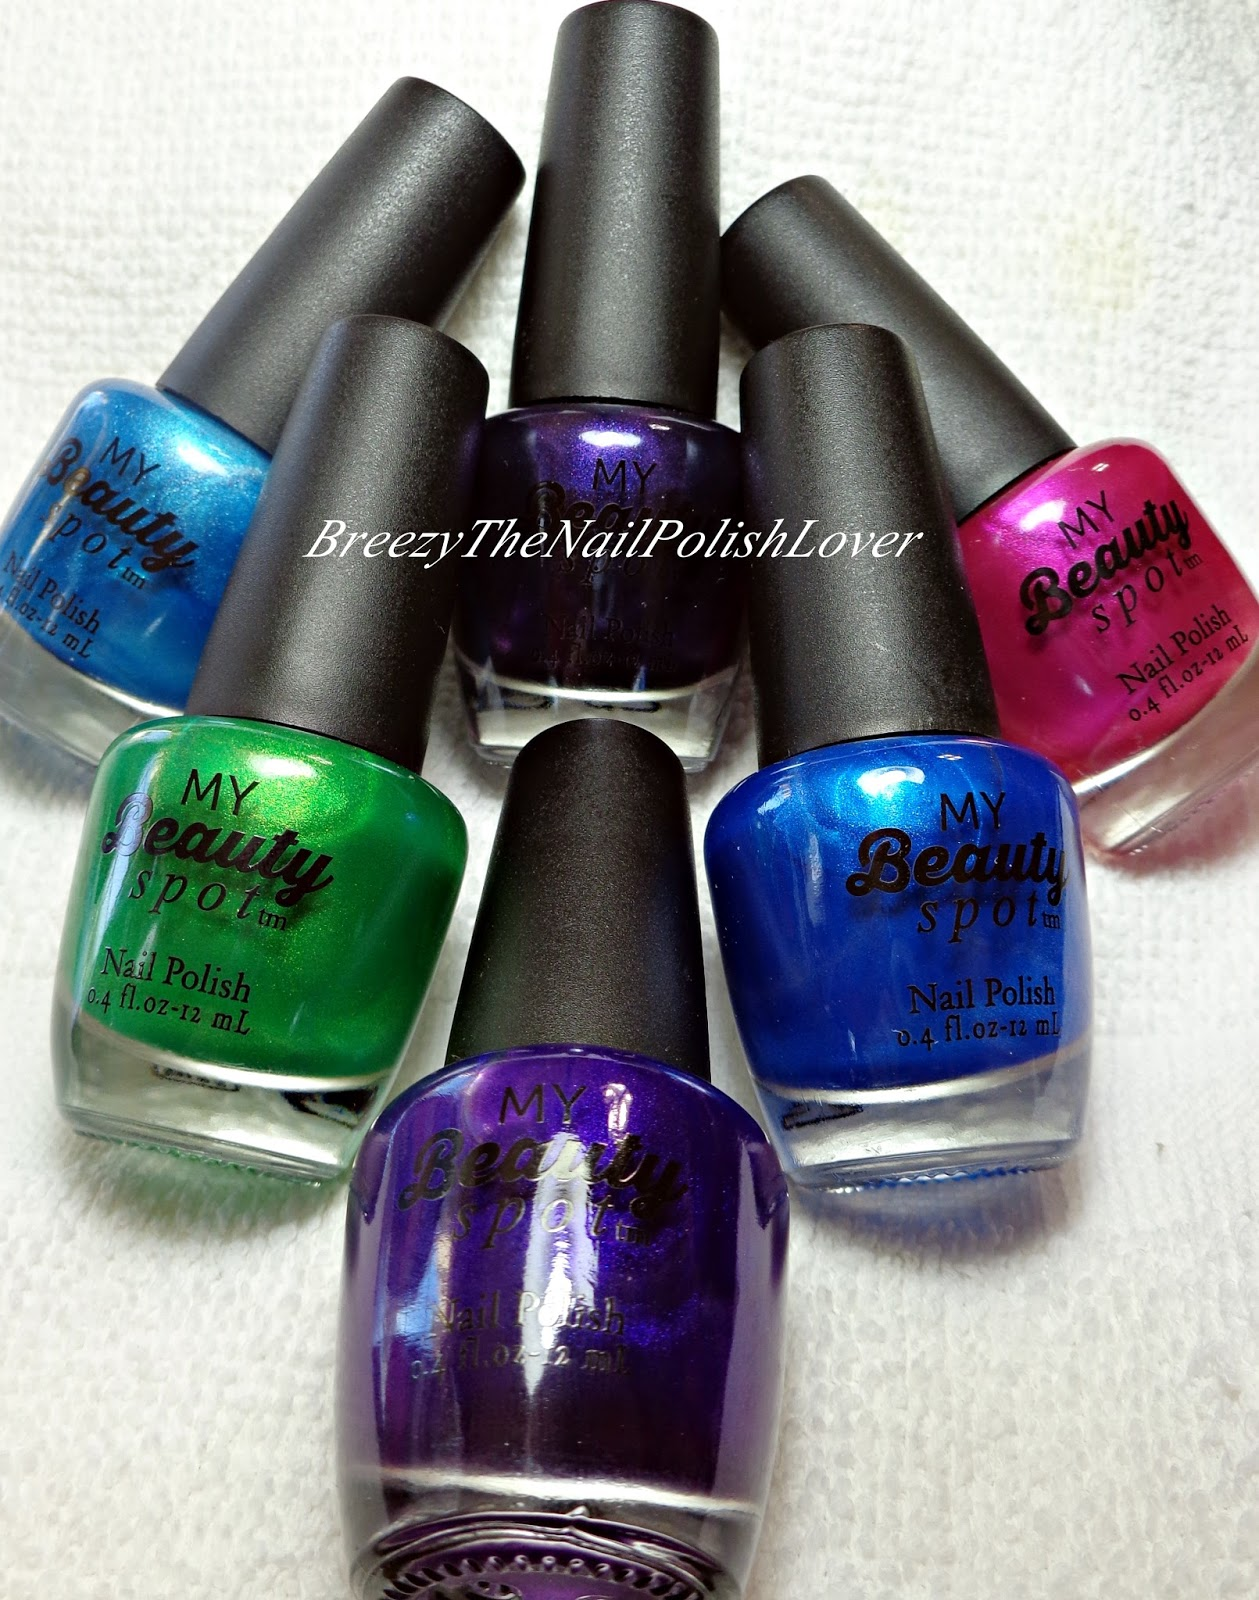 BreezyTheNailPolishLover: My Beauty Spot Nail Polish Nail